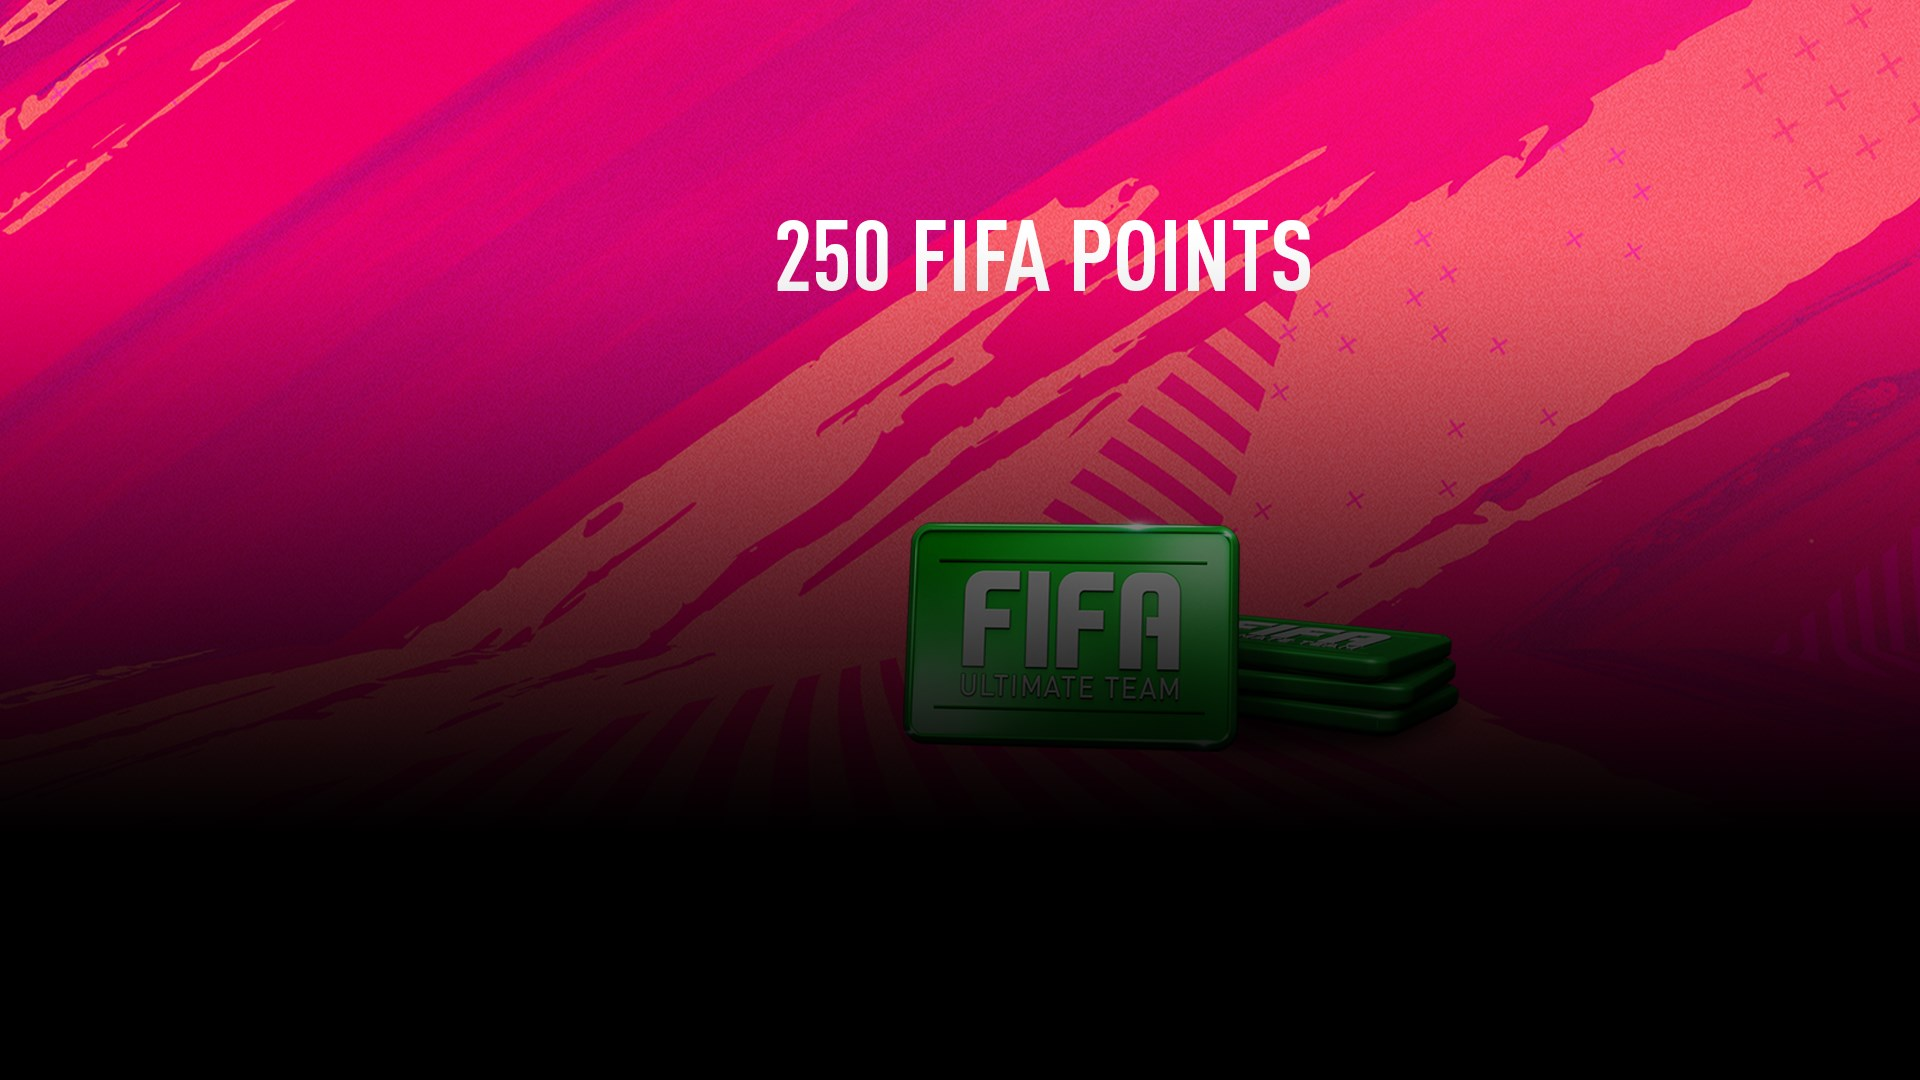 FIFA Points 250